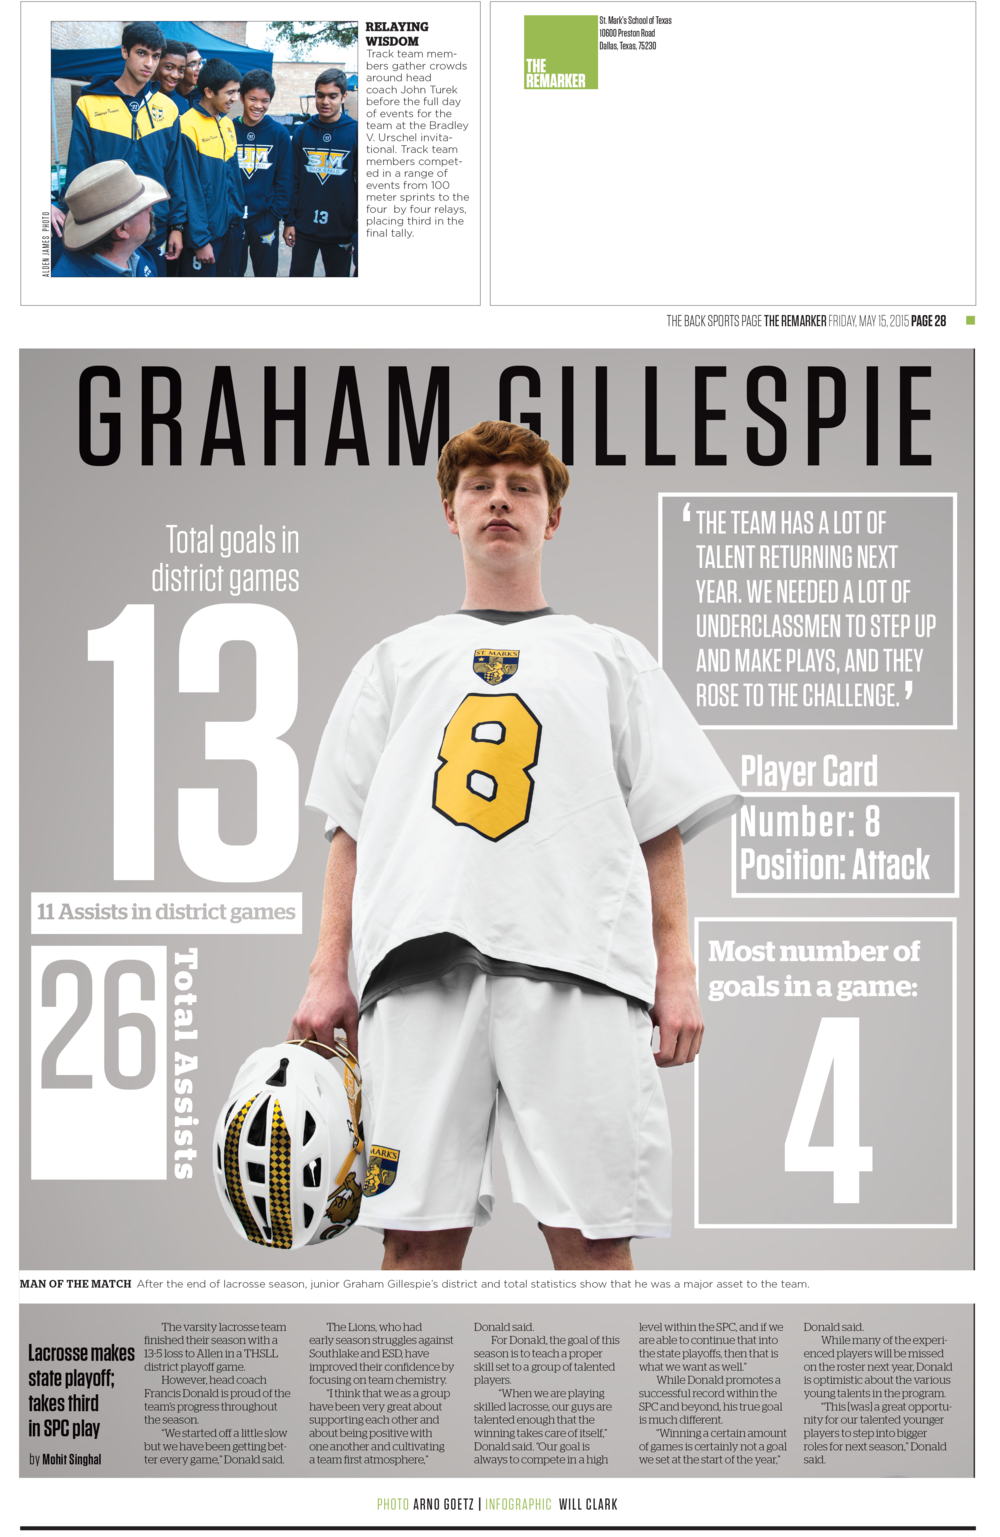 """This sports page design uses a wide array of statistics positioned around and behind the player, bringing the dominant visual to the forefront while still prominently featuring the numbers.   This design went on to win 1st place in CSPA's Gold Circle awards for """"Typography: The look of one page."""""""